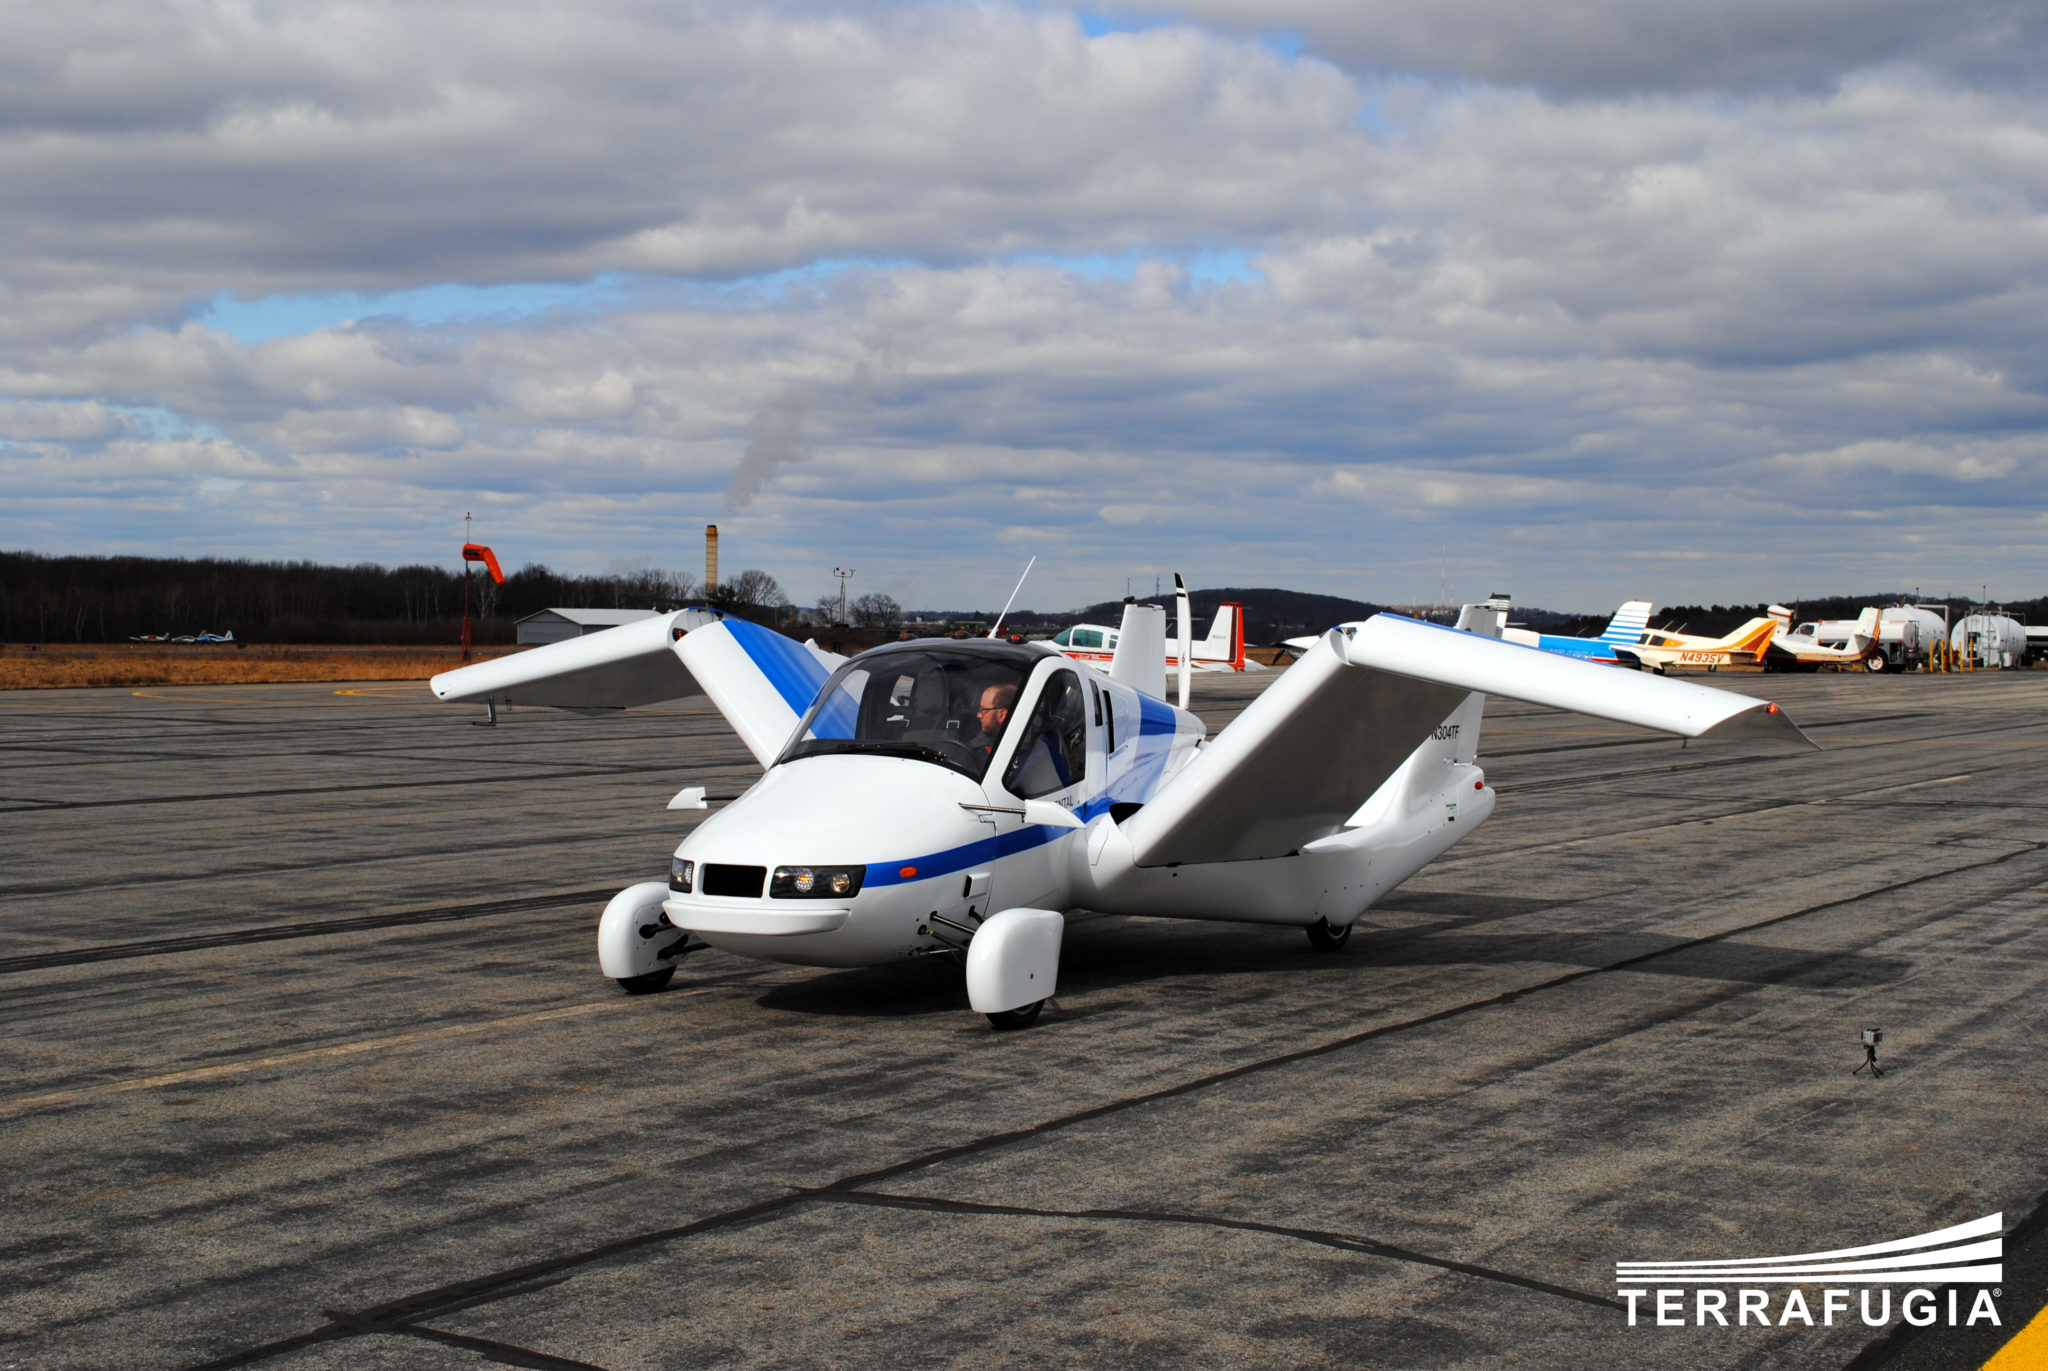 Terrafugia will be returning for its eighth year as exhibitors at EAA AirVenture